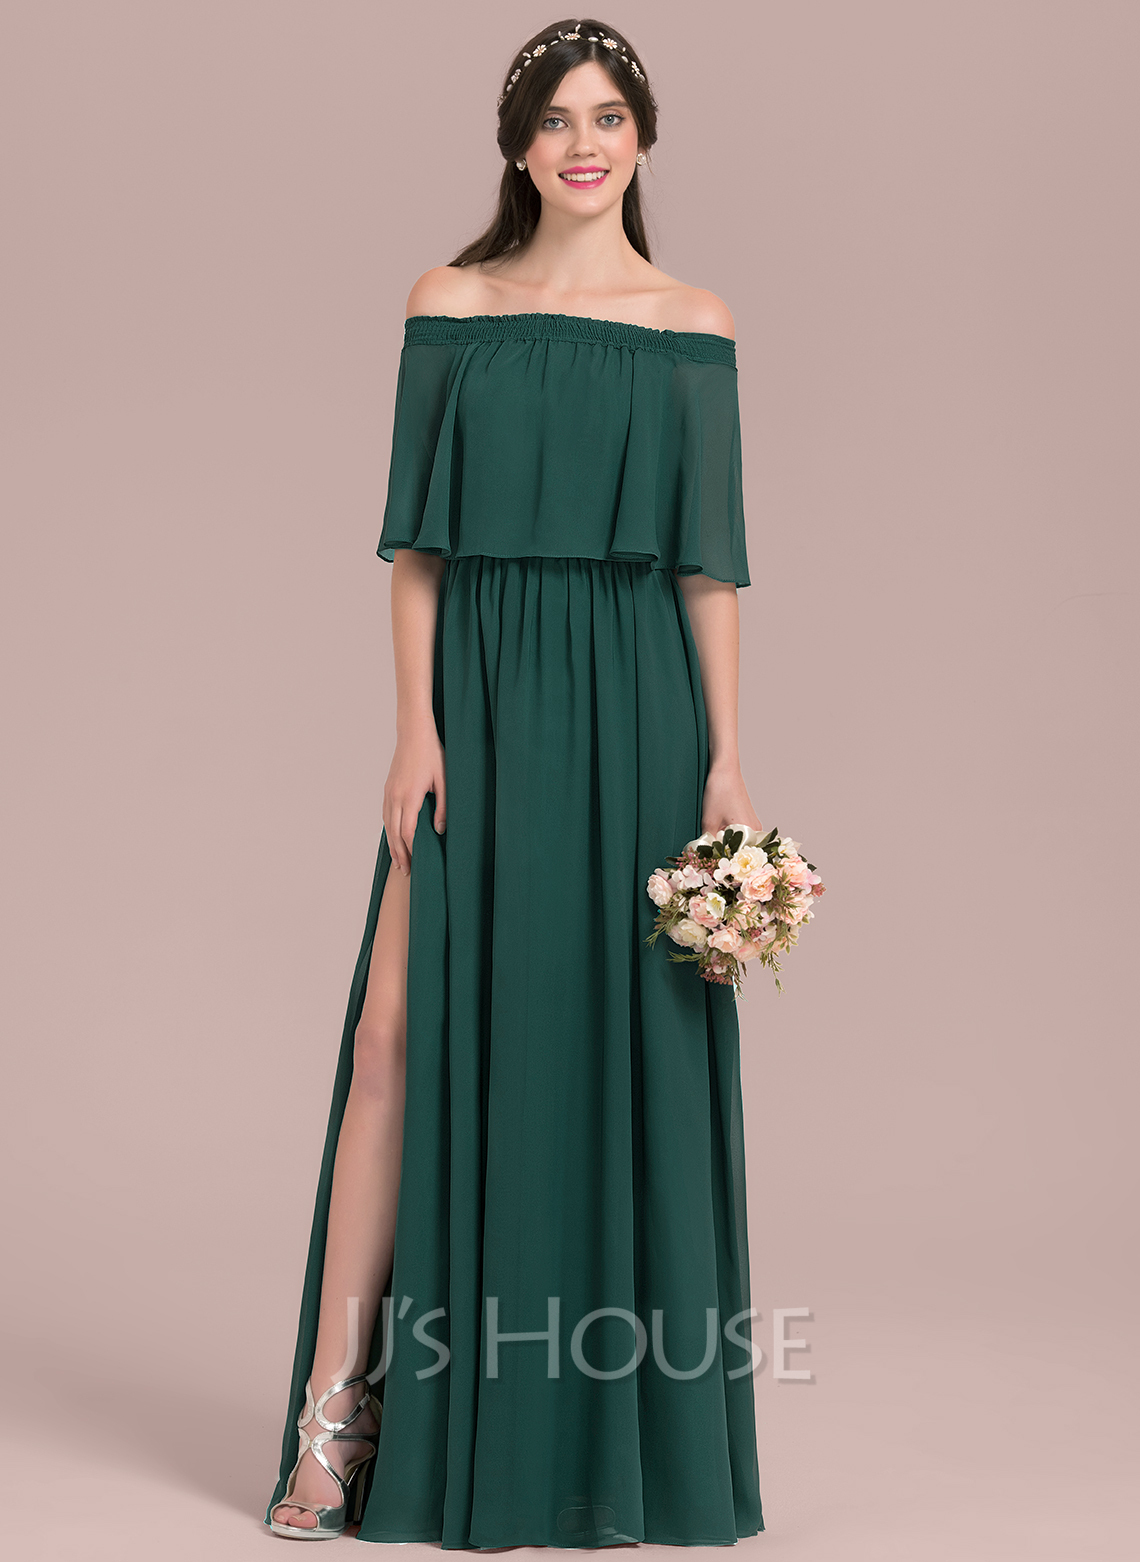 f74d4870192d6 A-Line/Princess Off-the-Shoulder Floor-Length Chiffon Bridesmaid Dress.  Loading zoom